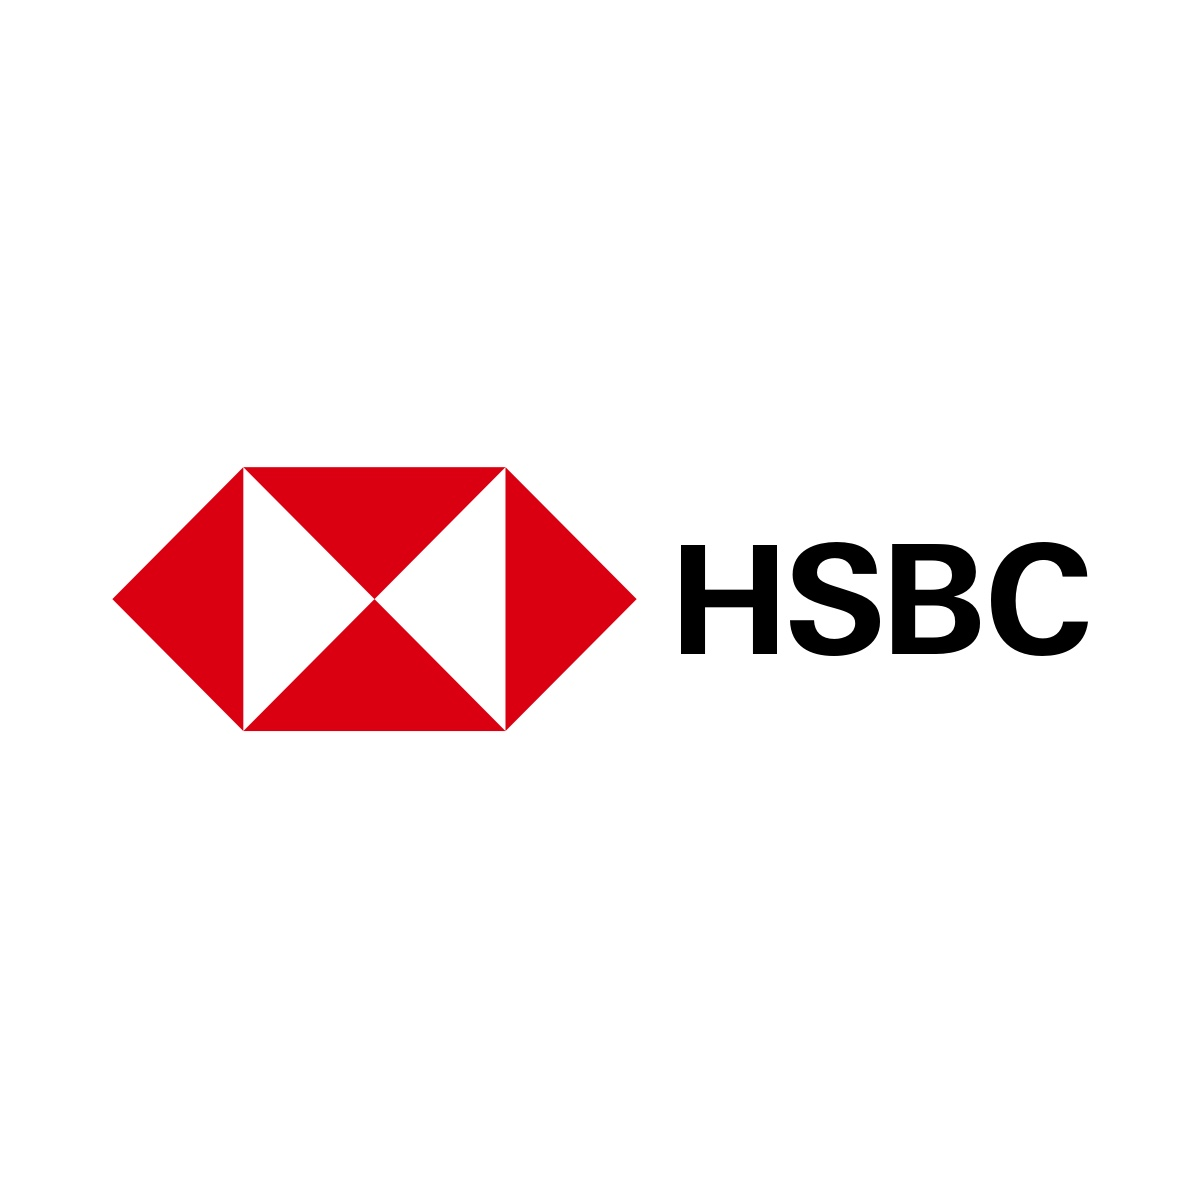 hsbc bank - photo #20